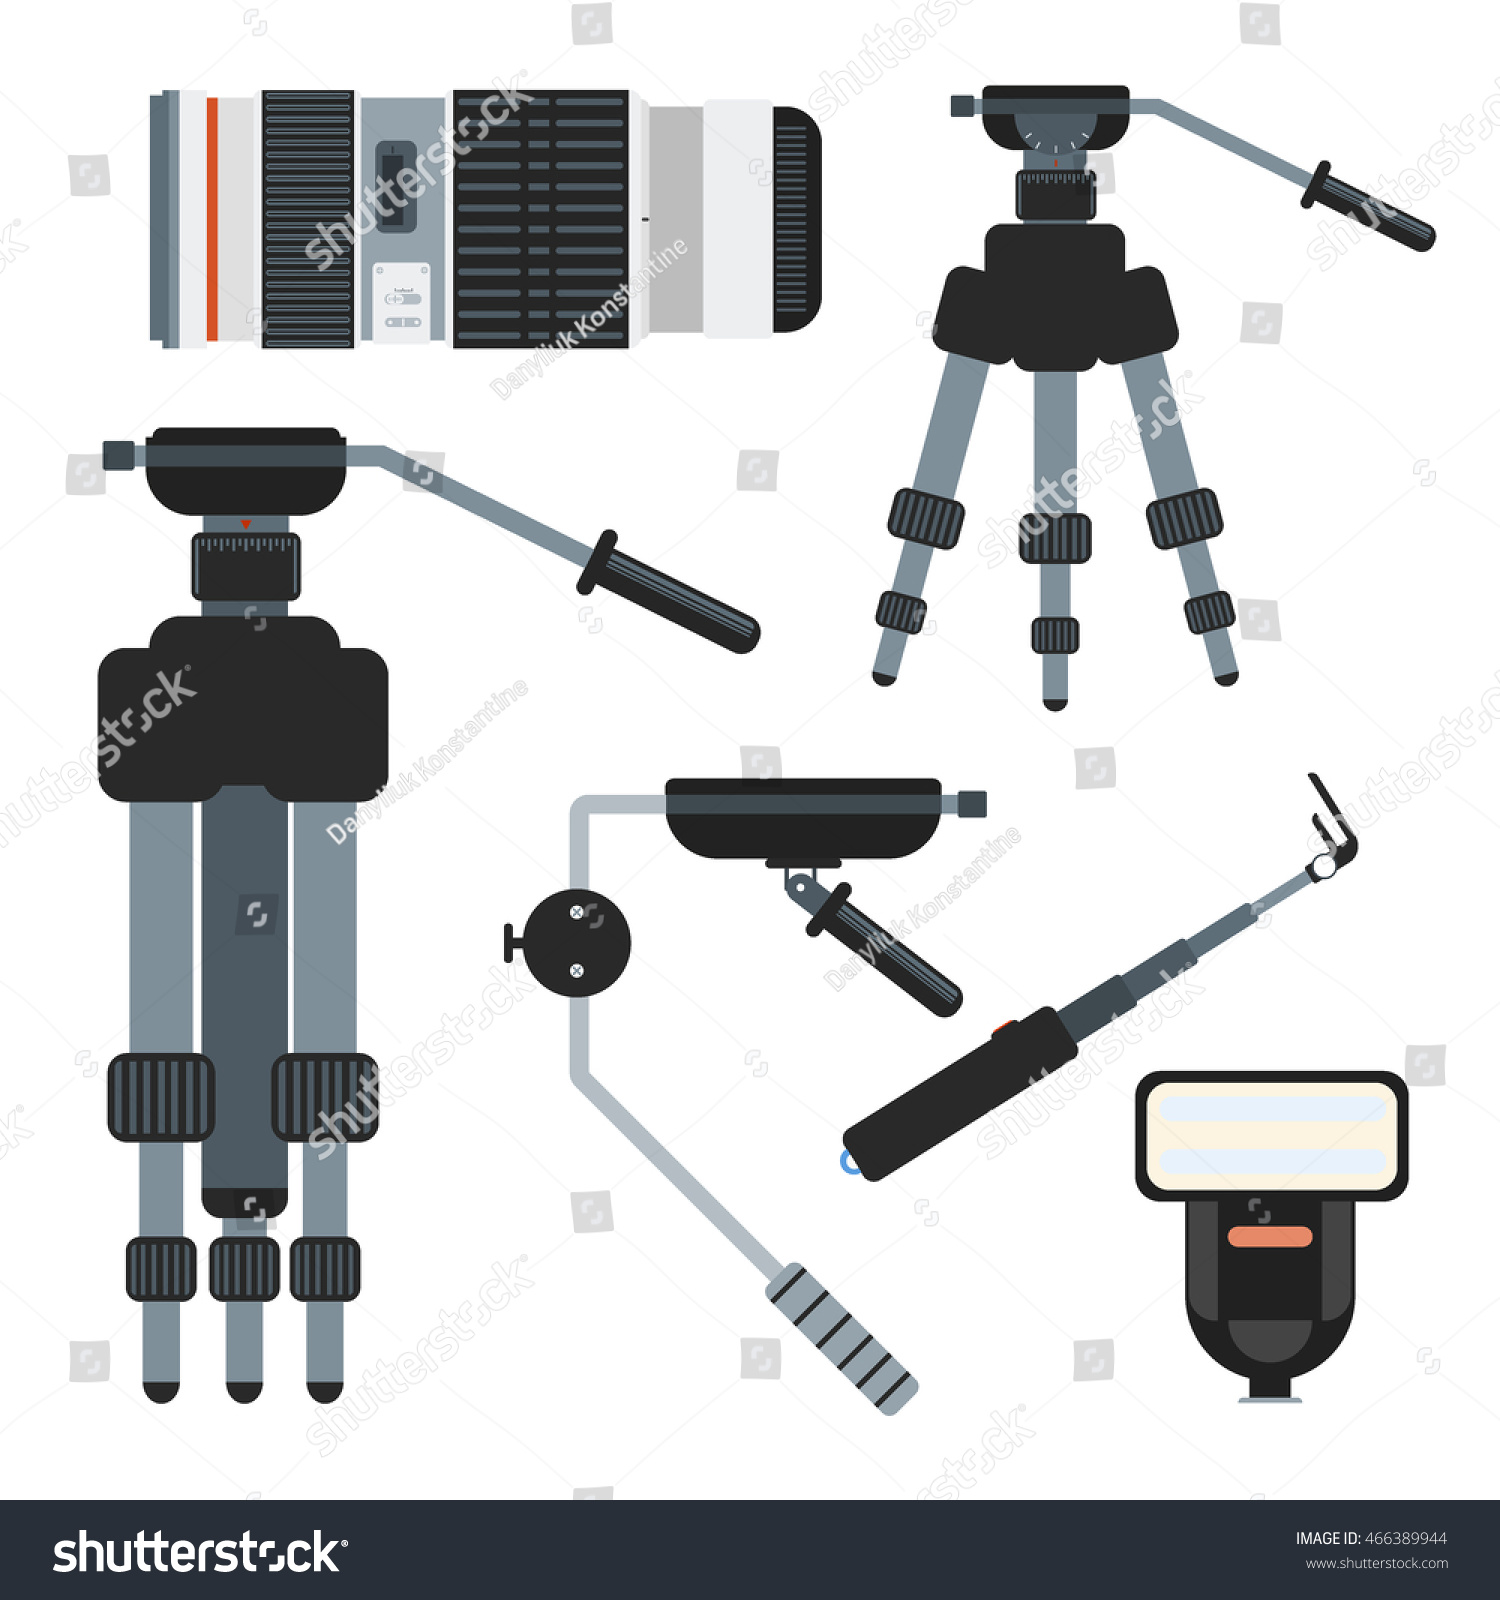 Professional Photographer Camera On Tripod Photo Stock Vector ... for Photography Lighting Equipment For Beginners  70ref